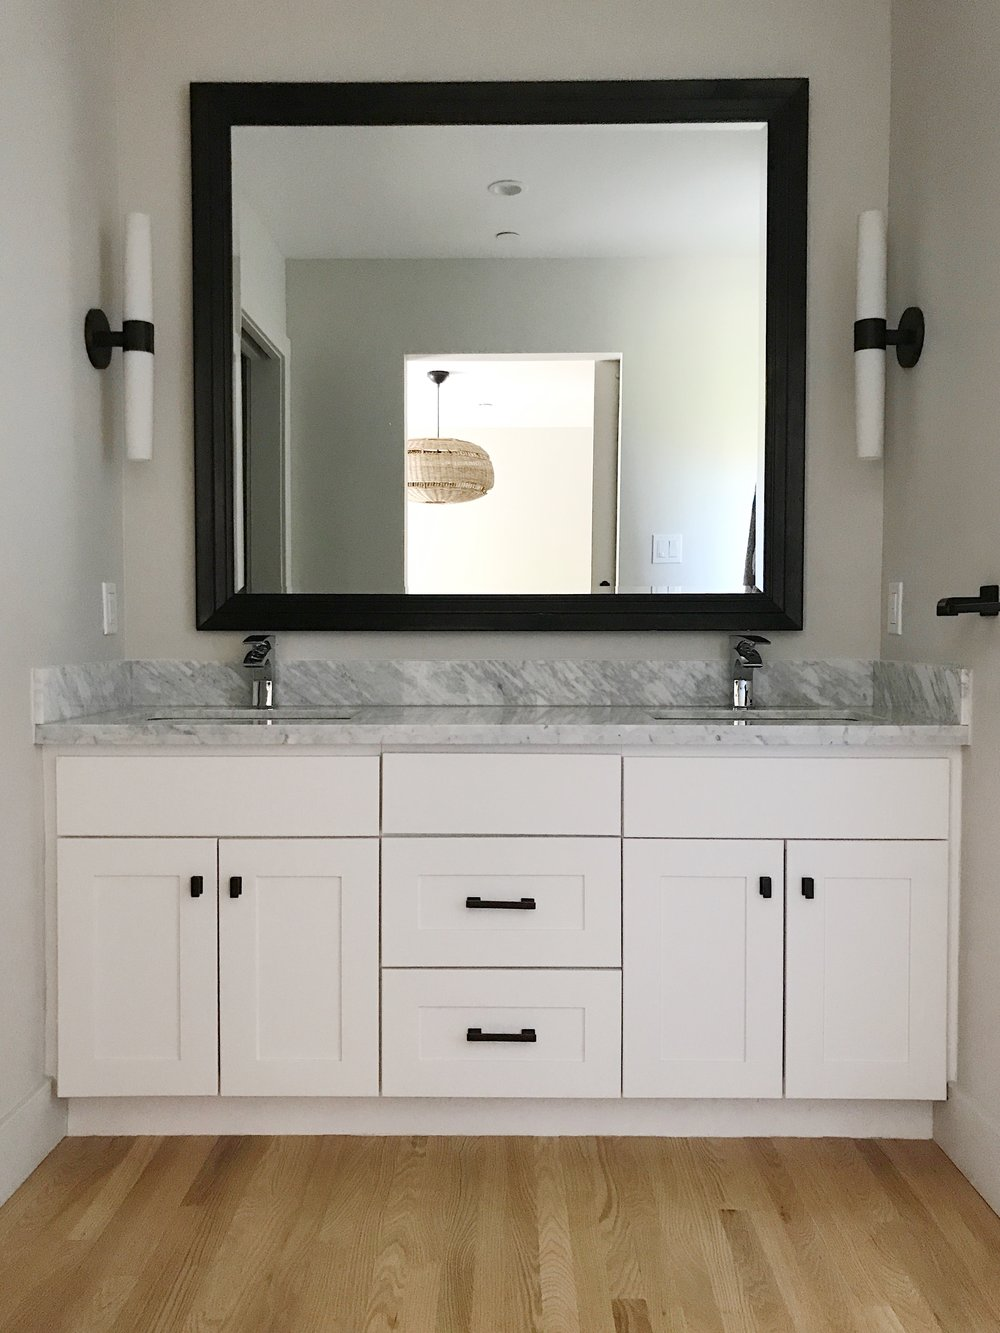 Blandsville - someday the sconces, mirror and faucets will all go but for now....